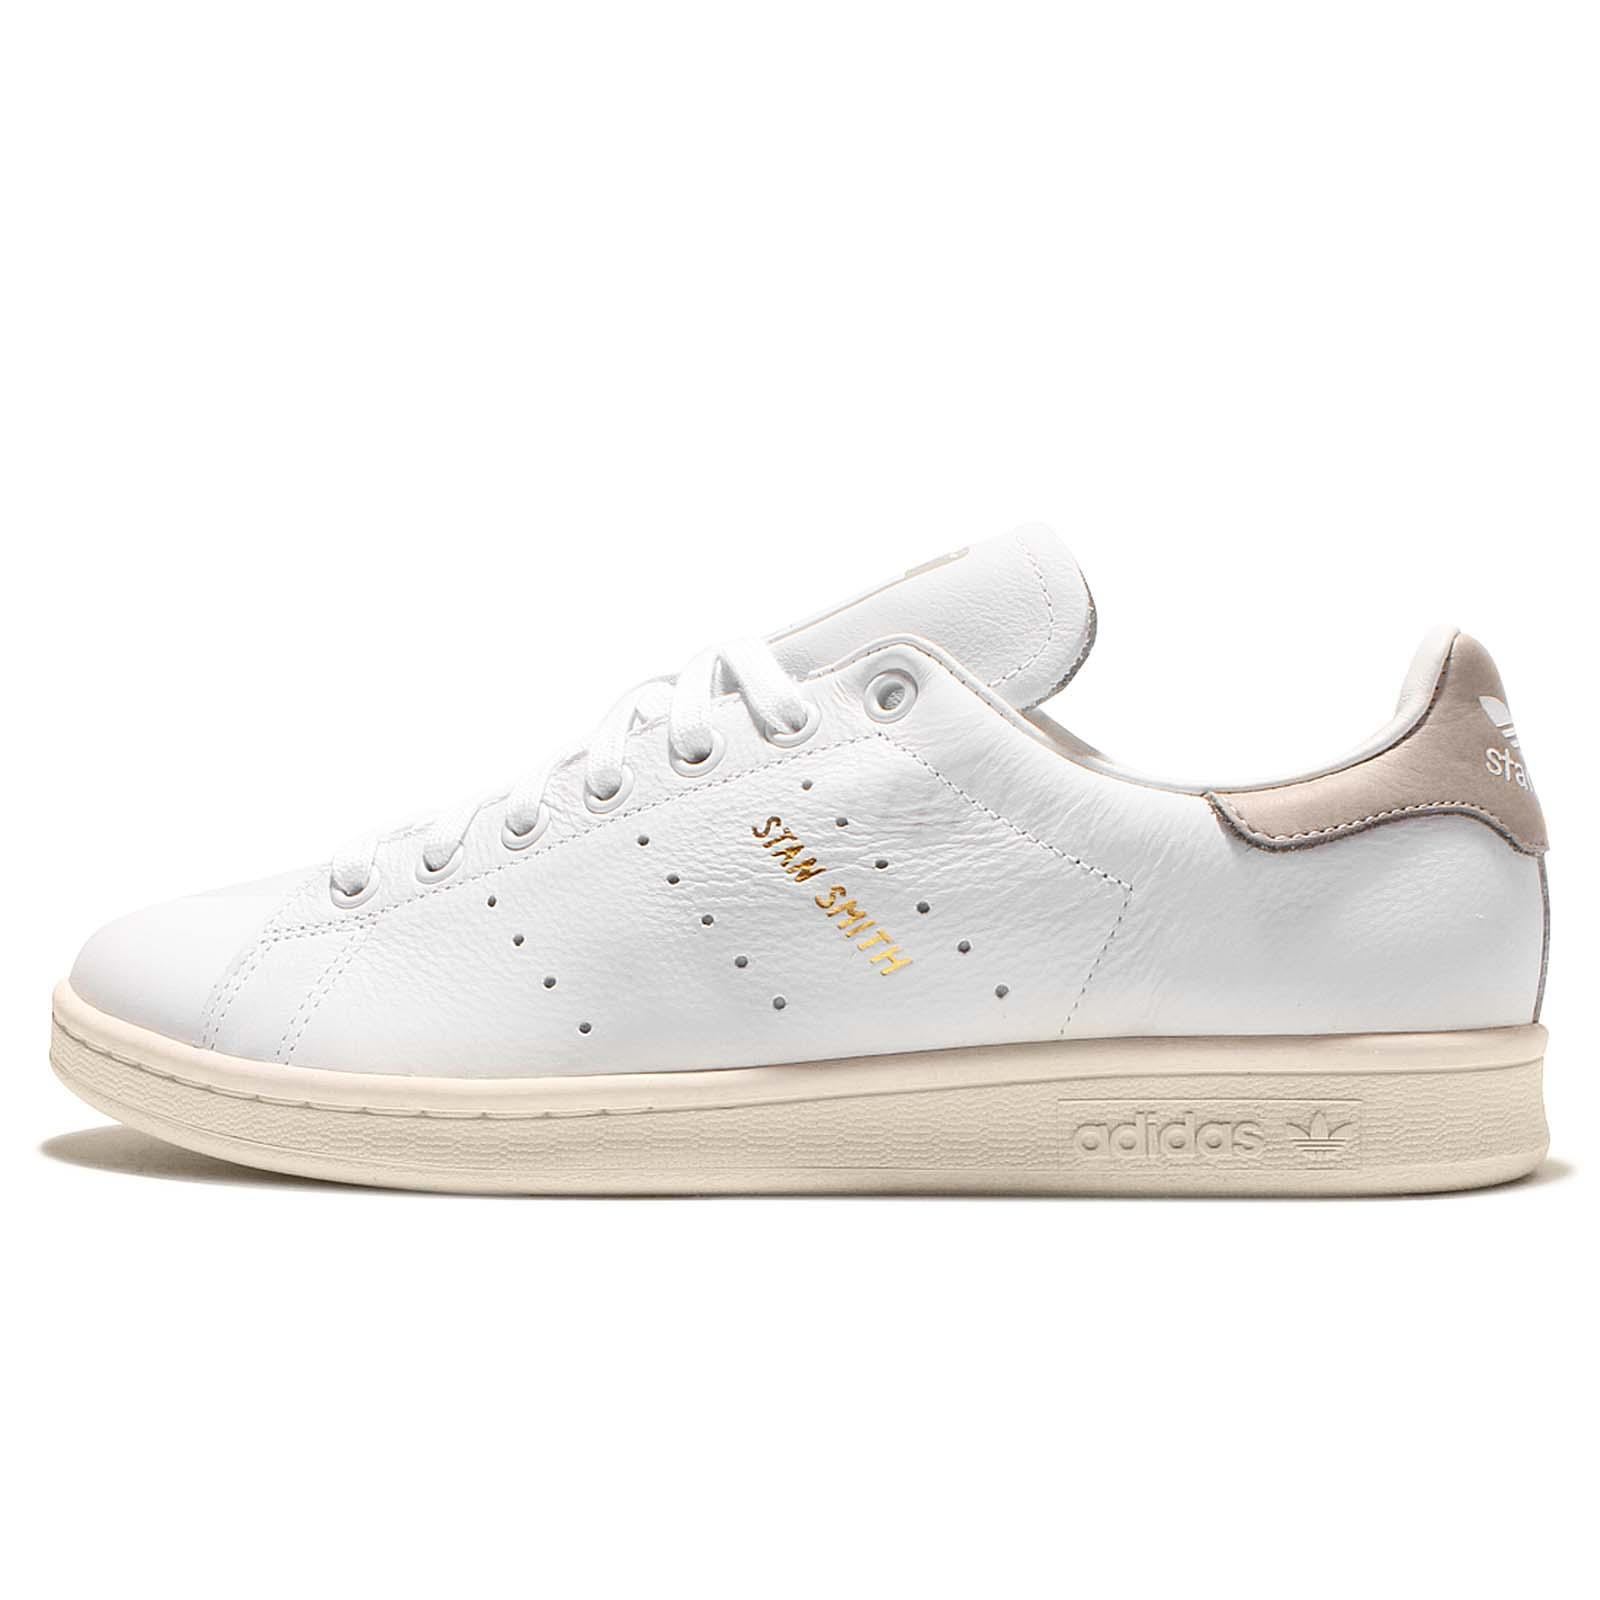 adidas Originals Stan Smith White Clear Granite Mens Classic Trainers S75075